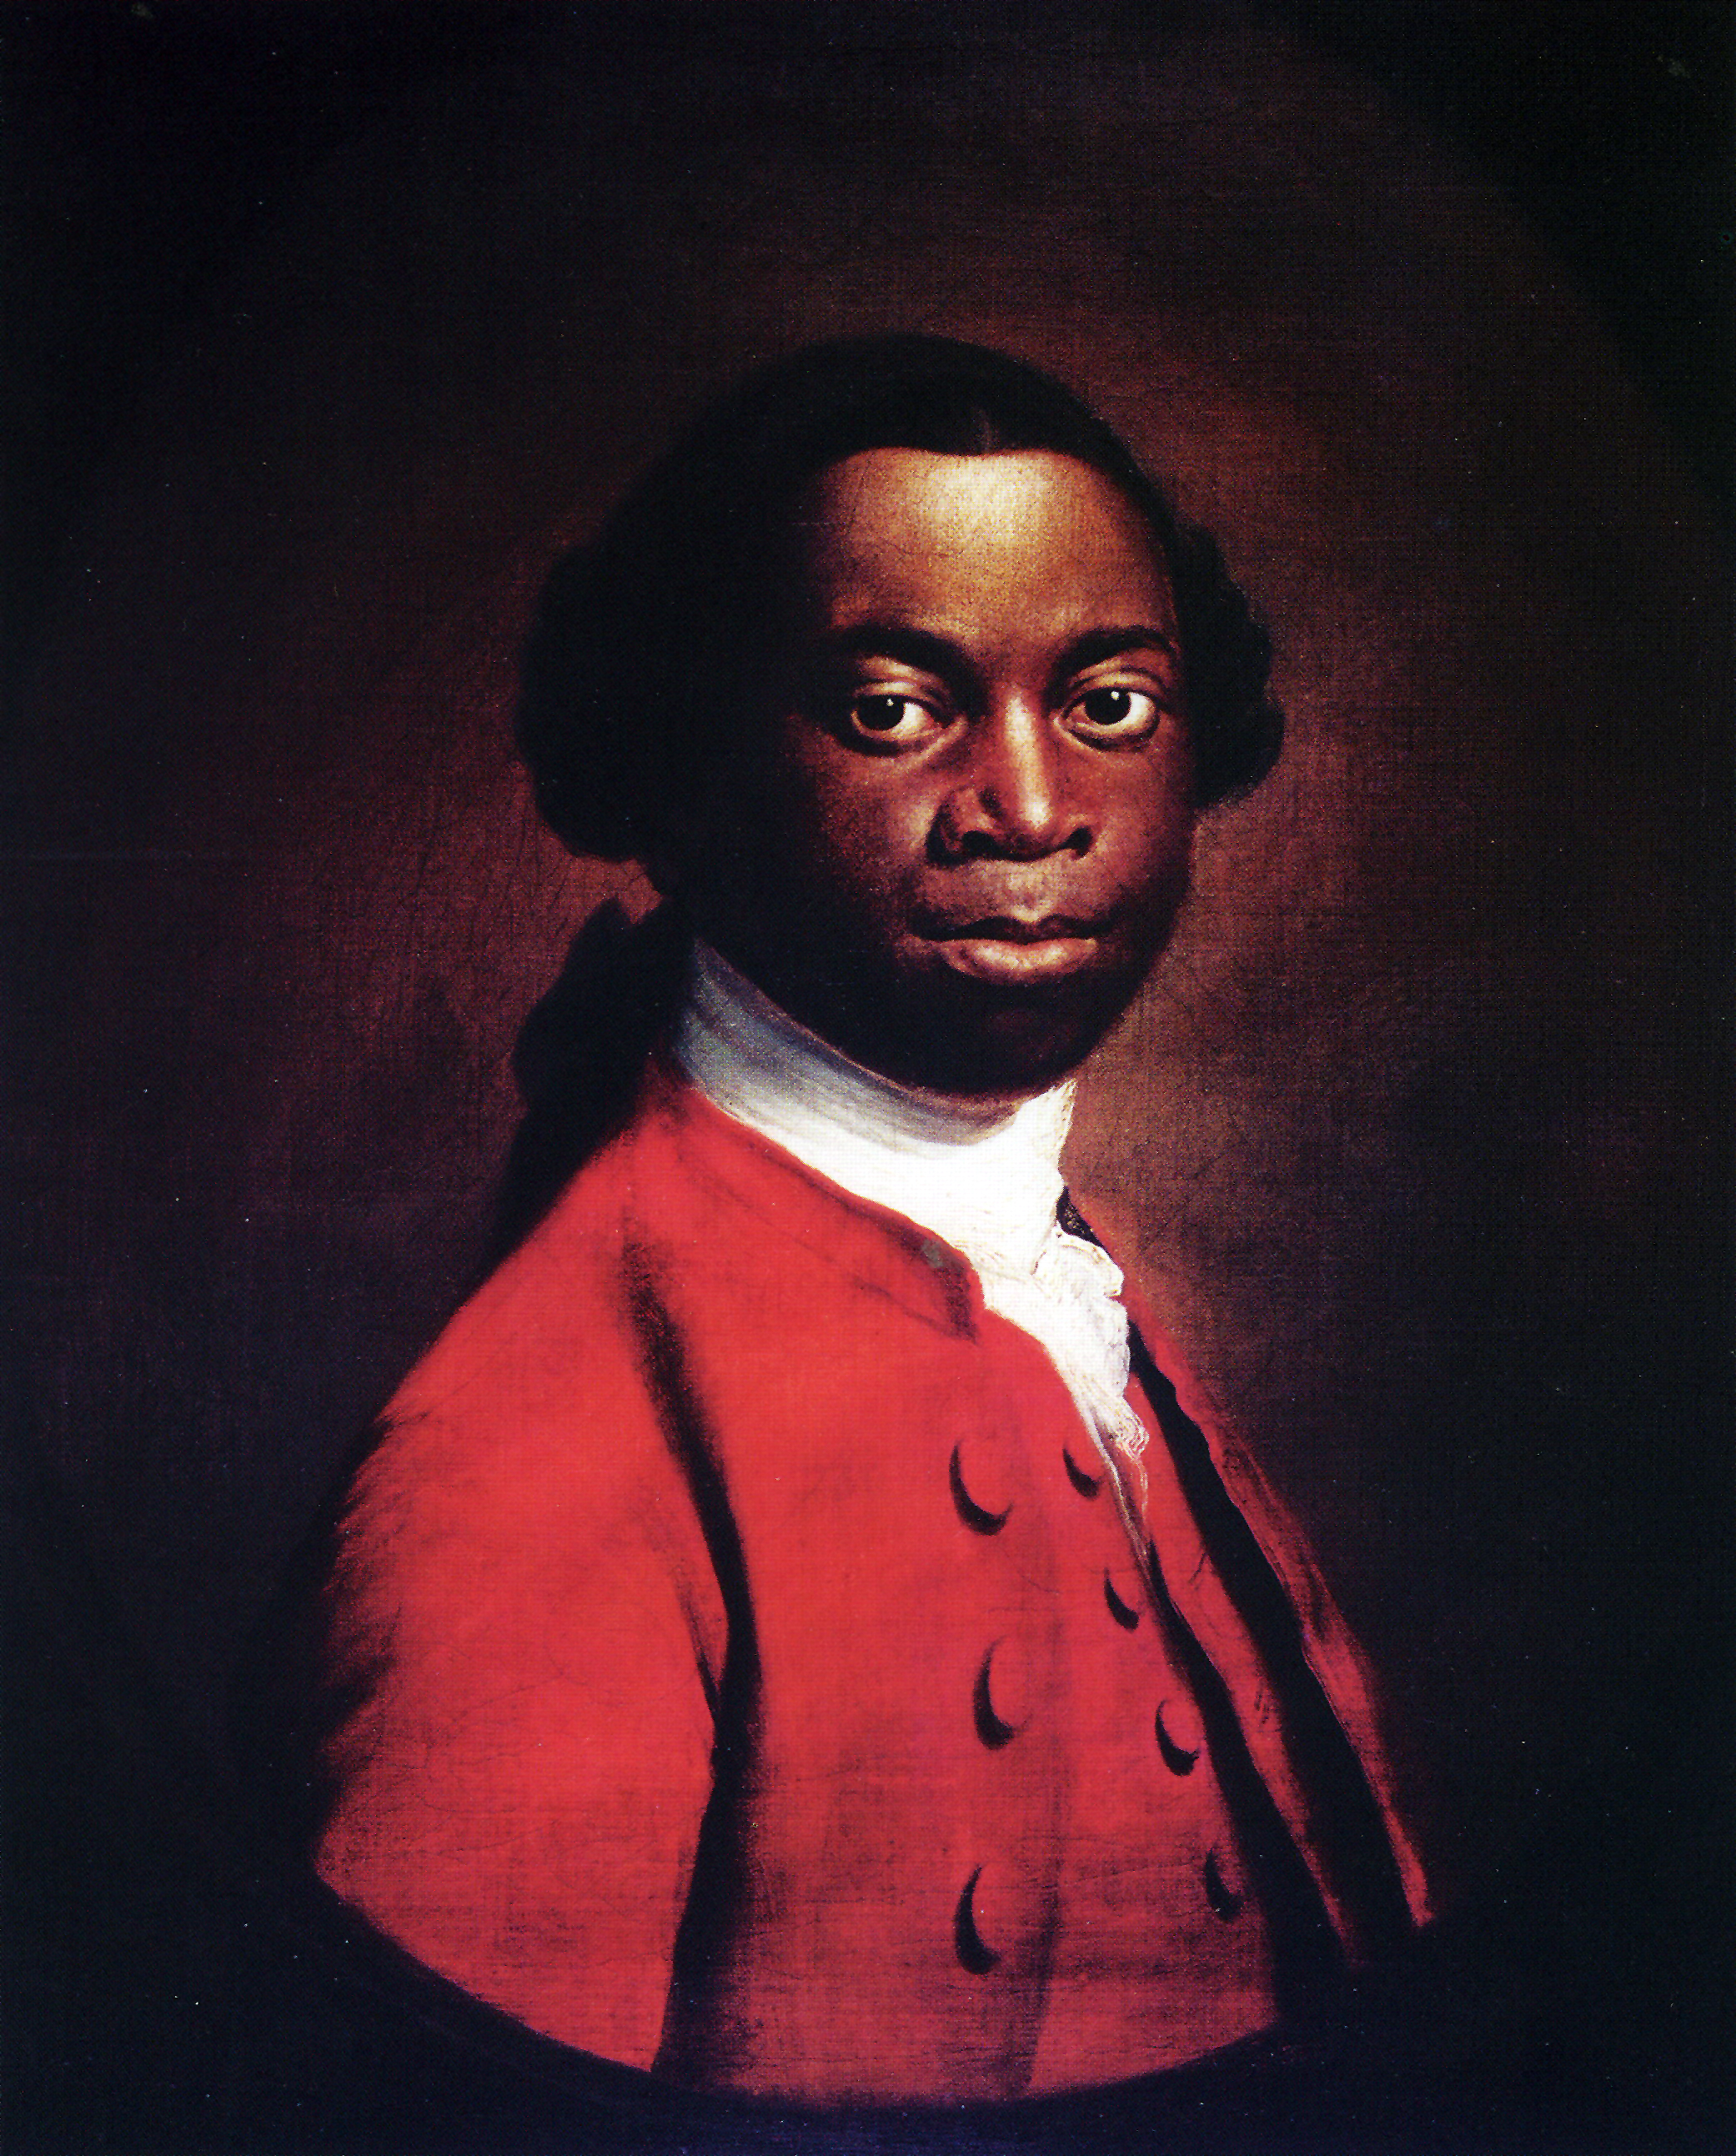 Olaudah Equiano, was a former slave, seaman and merchant who wrote an autobiography depicting the horrors of slavery and lobbied parliament for its abolition. In his biography he records he was born in what is now Nigeria, kidnapped and sold into slavery as a child. He then endured the middle passag...